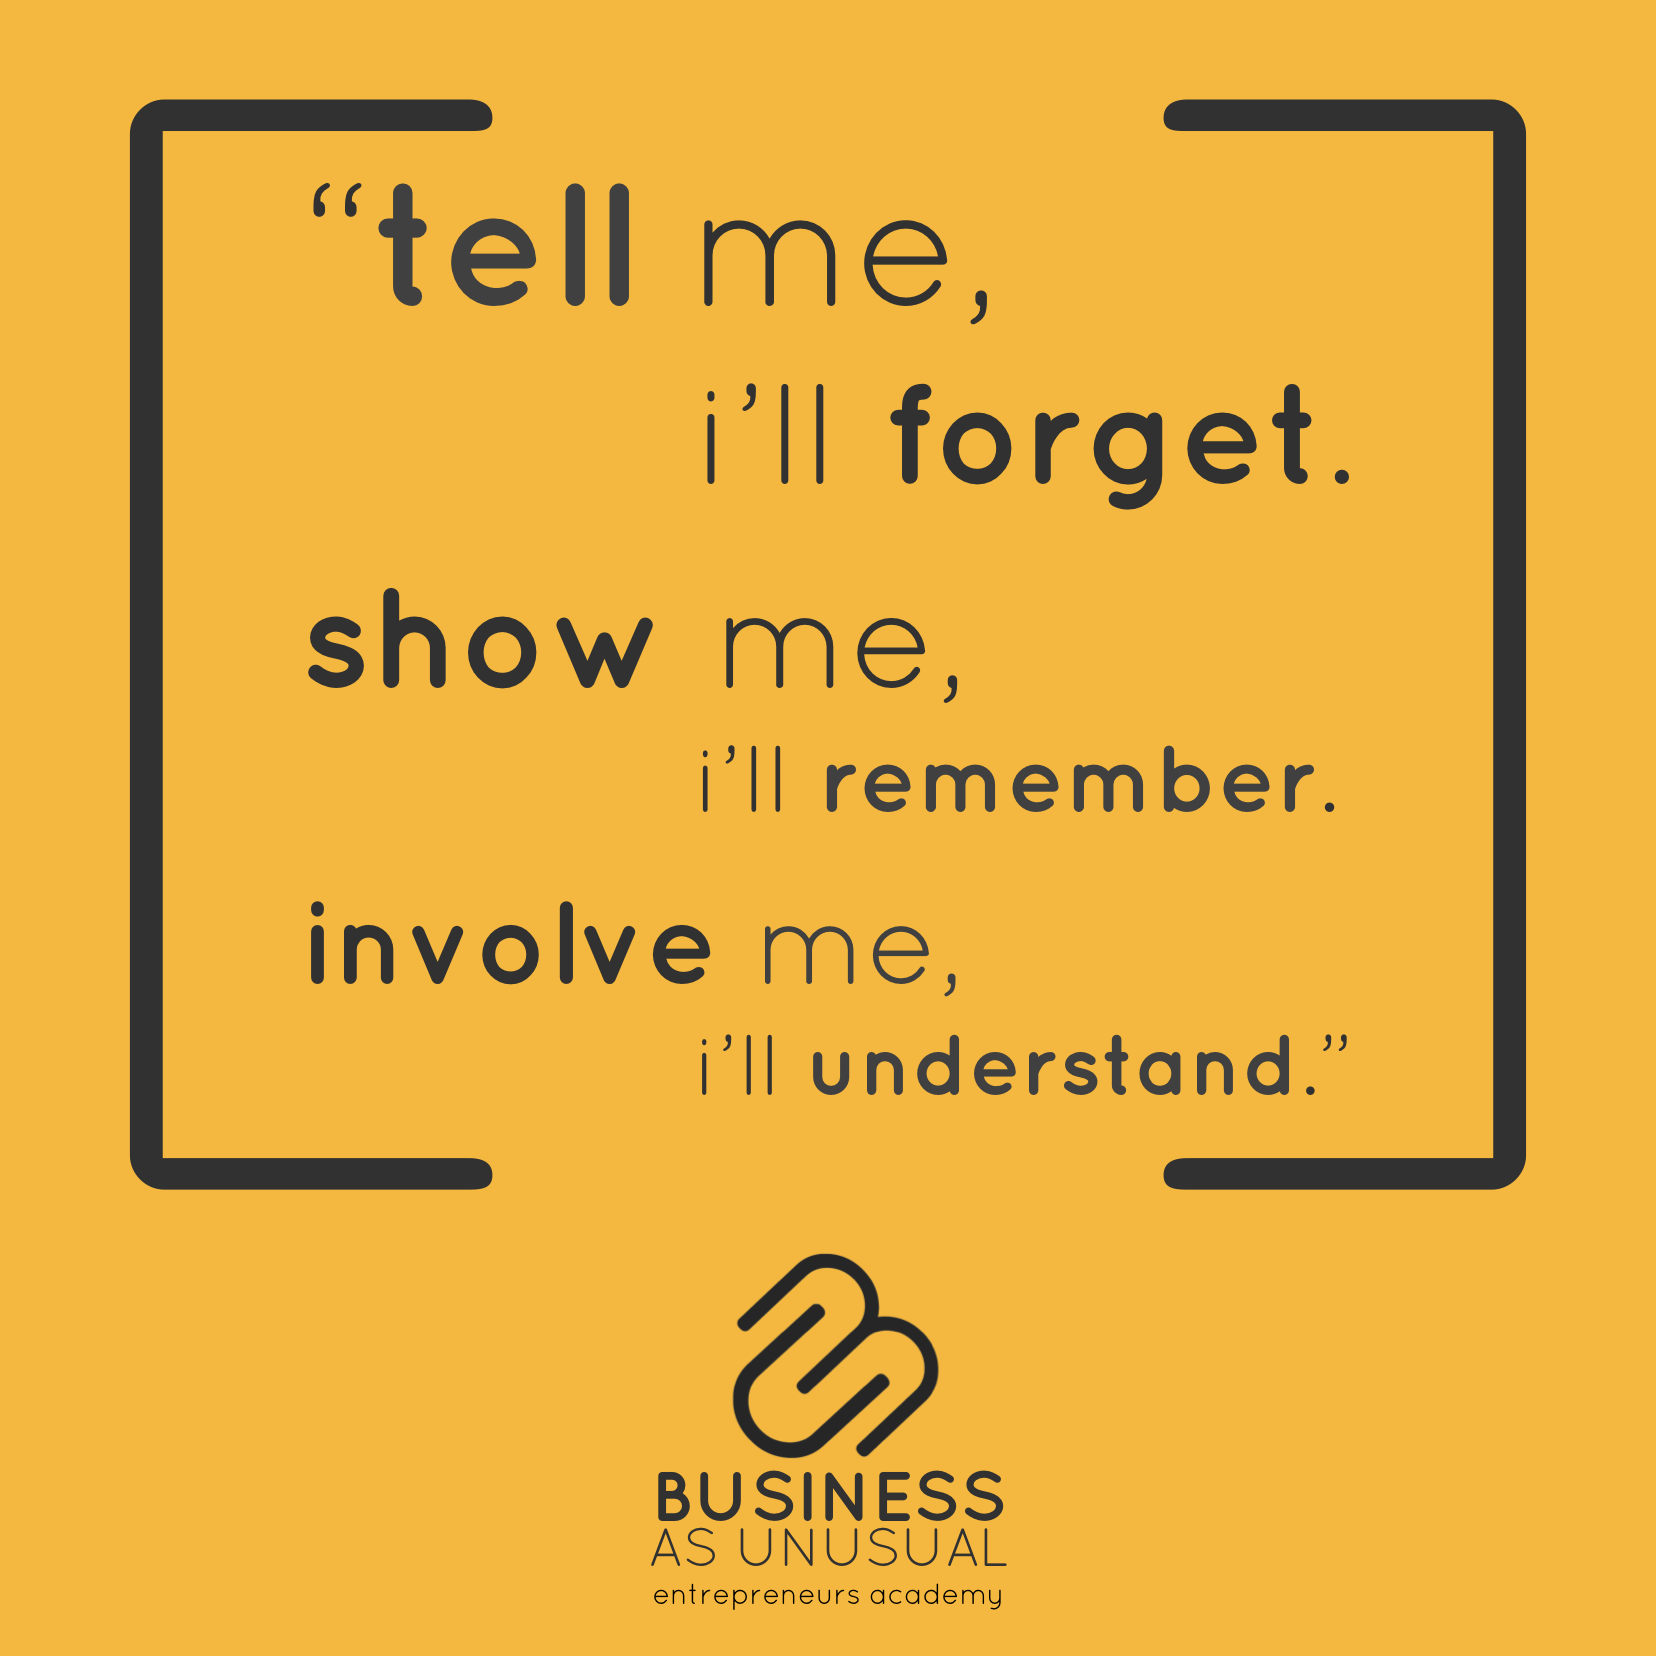 tell me, i'll forget. show me, i'll remember. involve me, i'll understand.